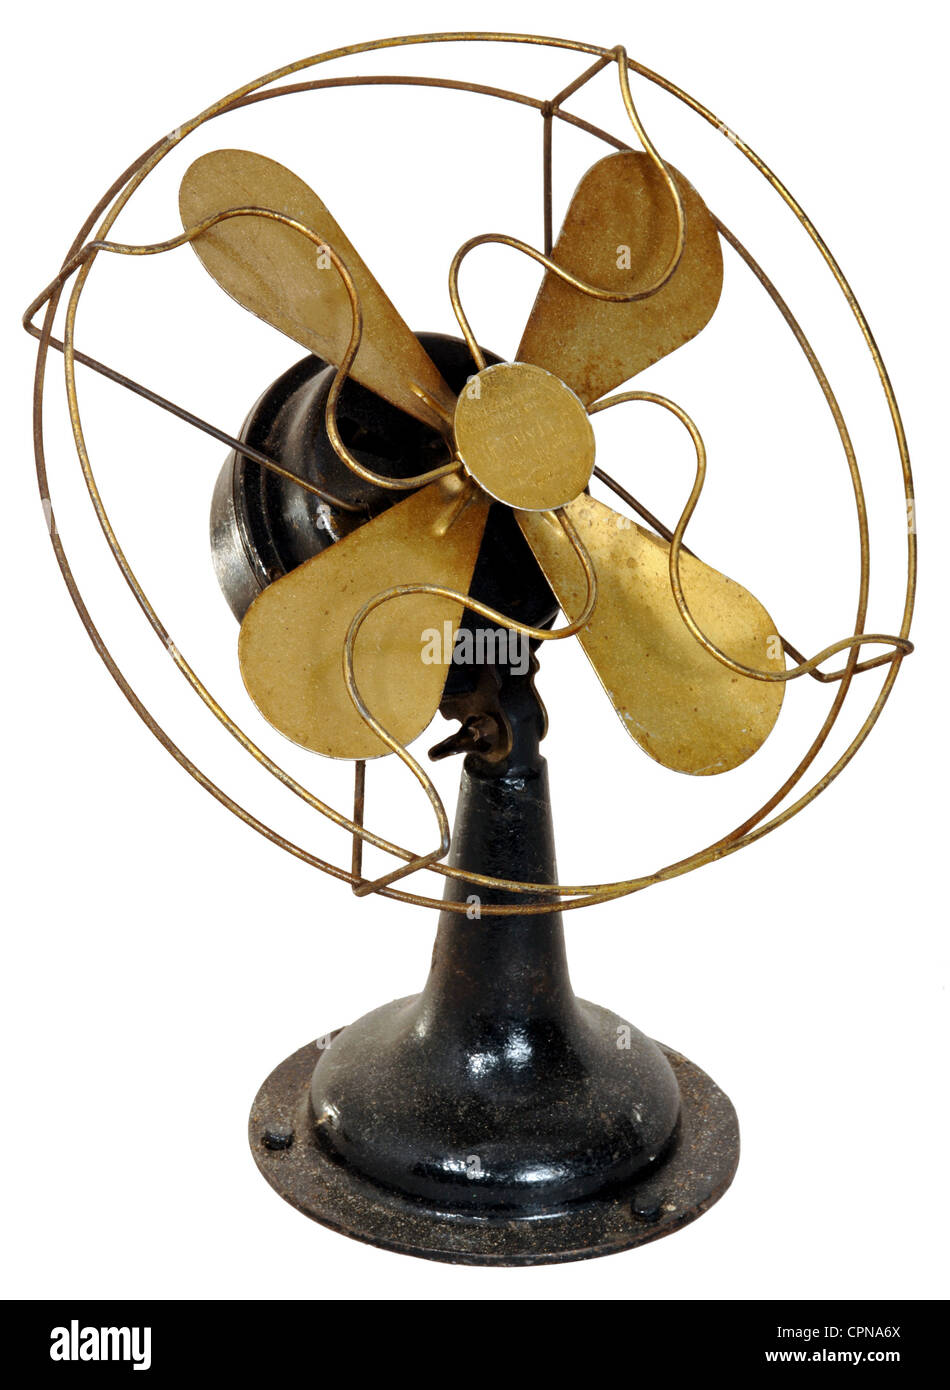 technics, fan, made by Chicago Electric Co., version Handyfan, United States of America (USA), circa 1920, Additional - Stock Image